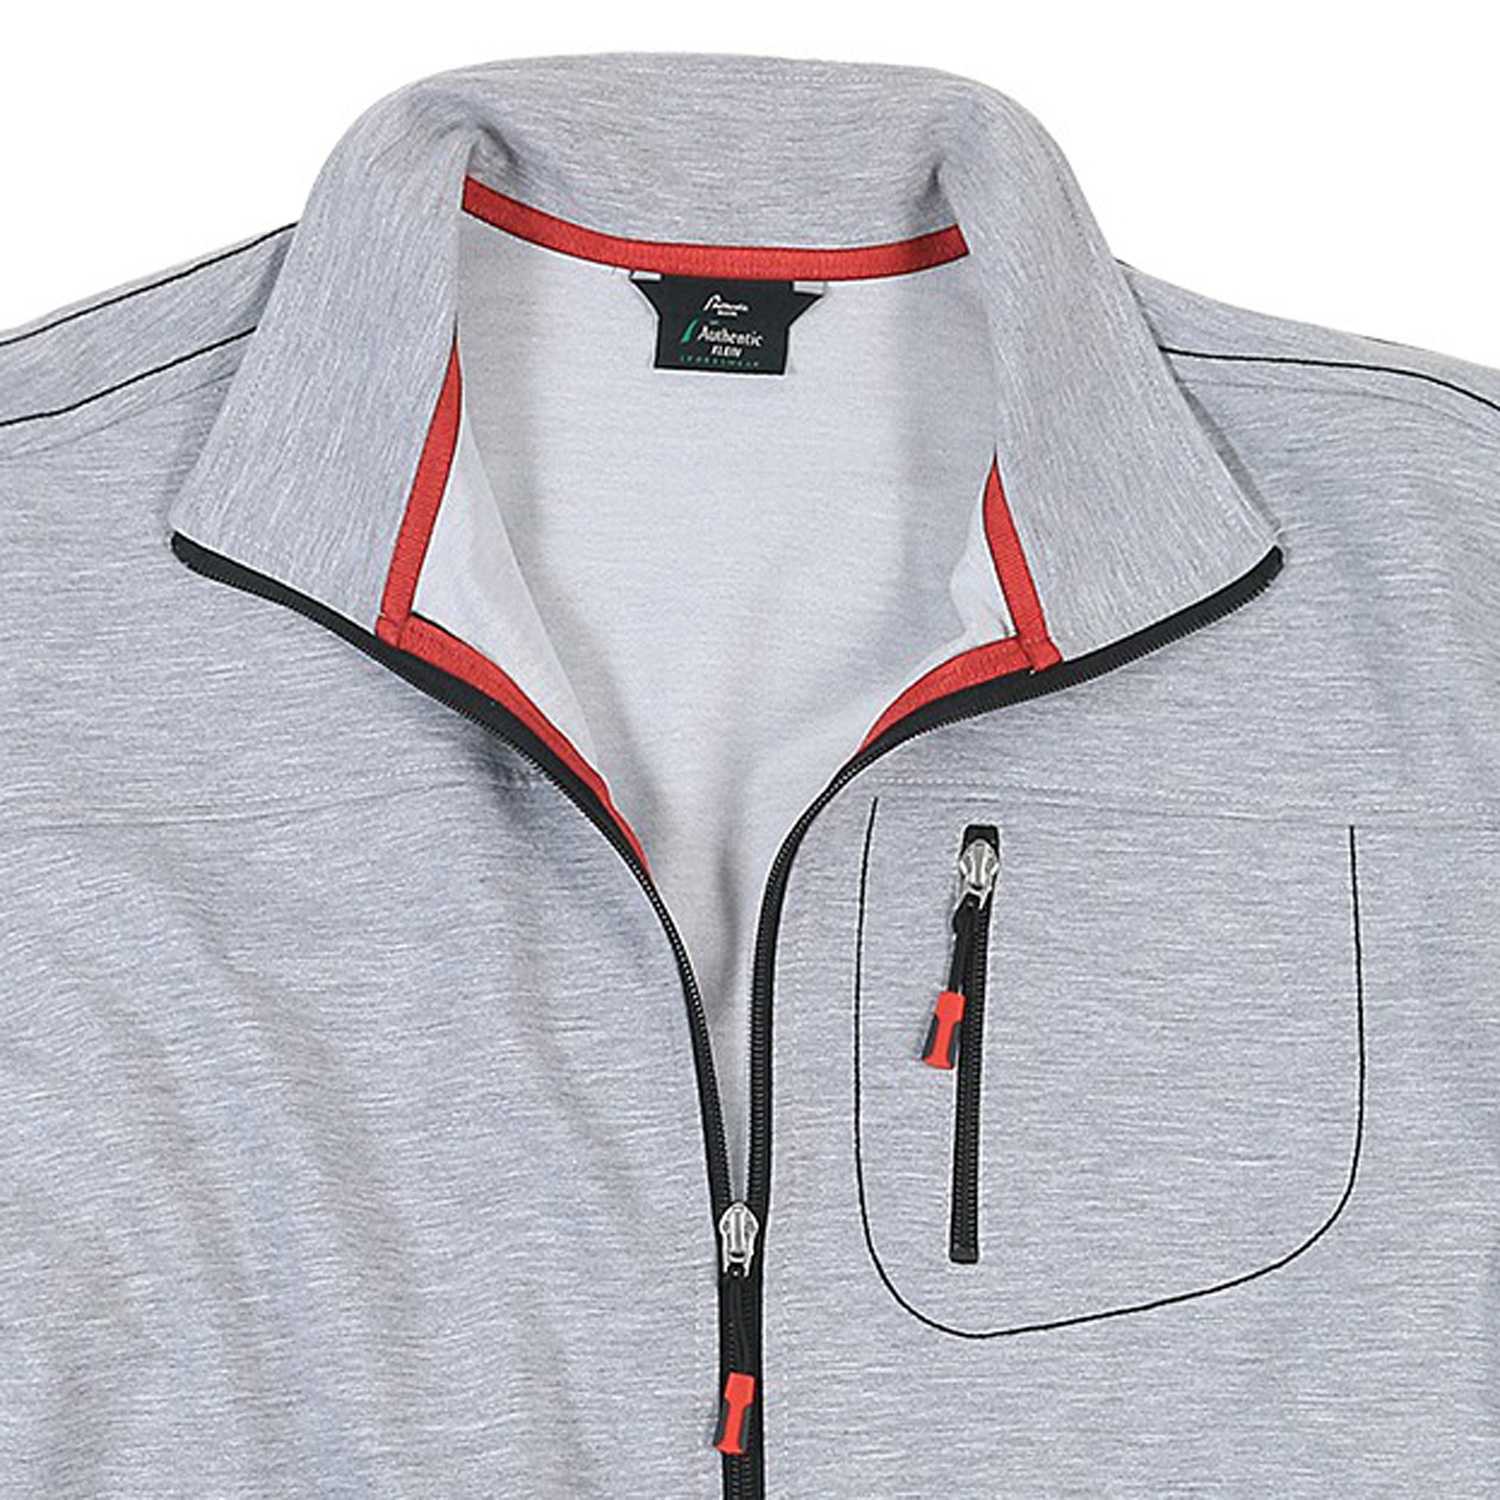 Detail Image to long size sports and leisure jacket in grey, plus sizes by AUTHENTIC KLEIN